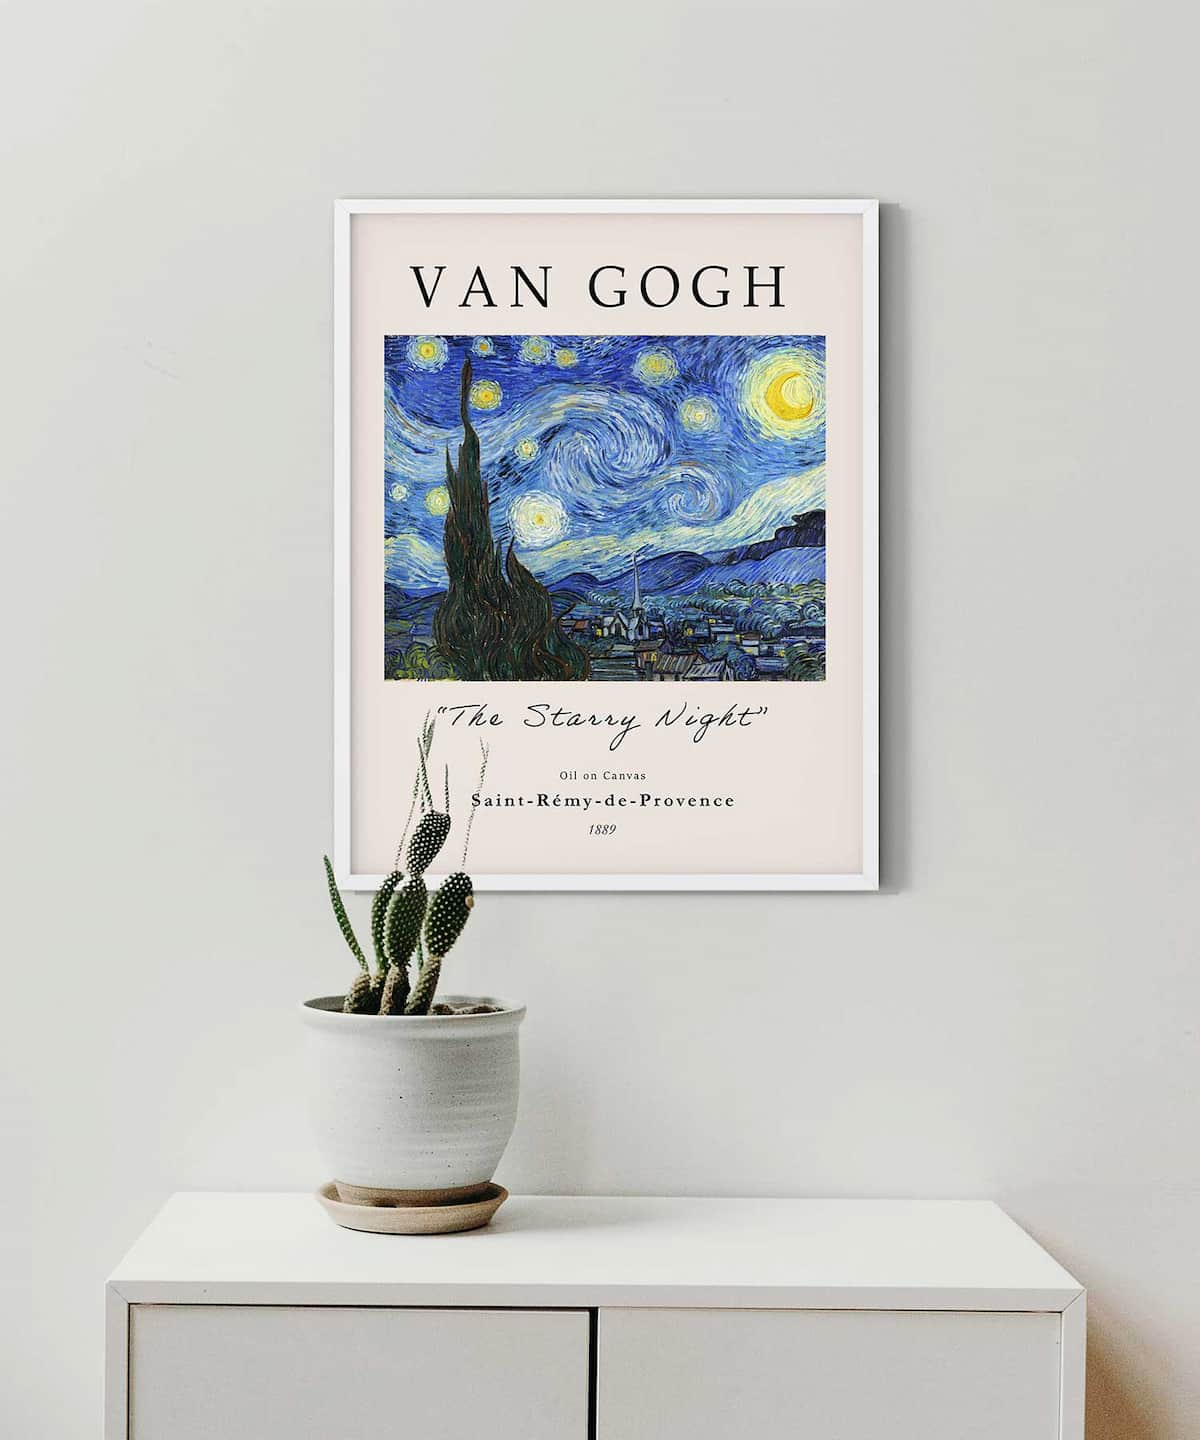 The-Starry-Night-Poster-White-Framed-on-Wall-Duwart